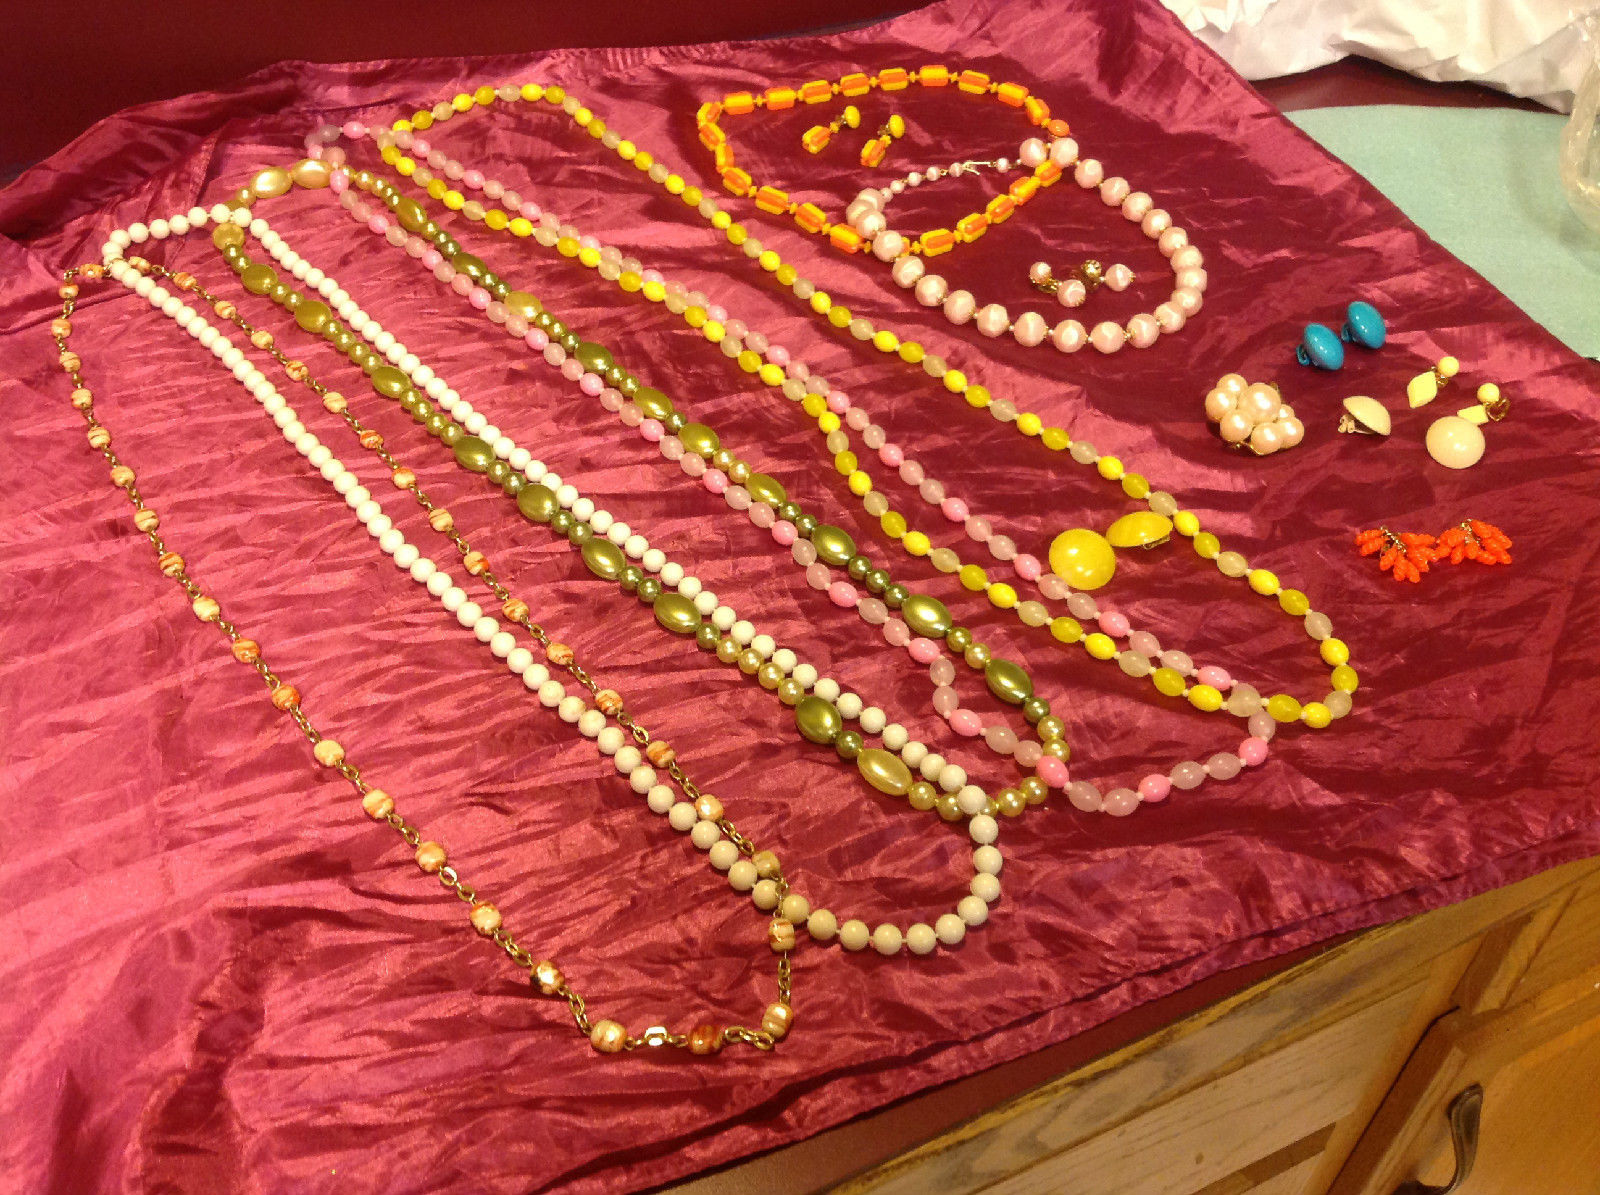 Large set of costume necklaces, earrings and a chain